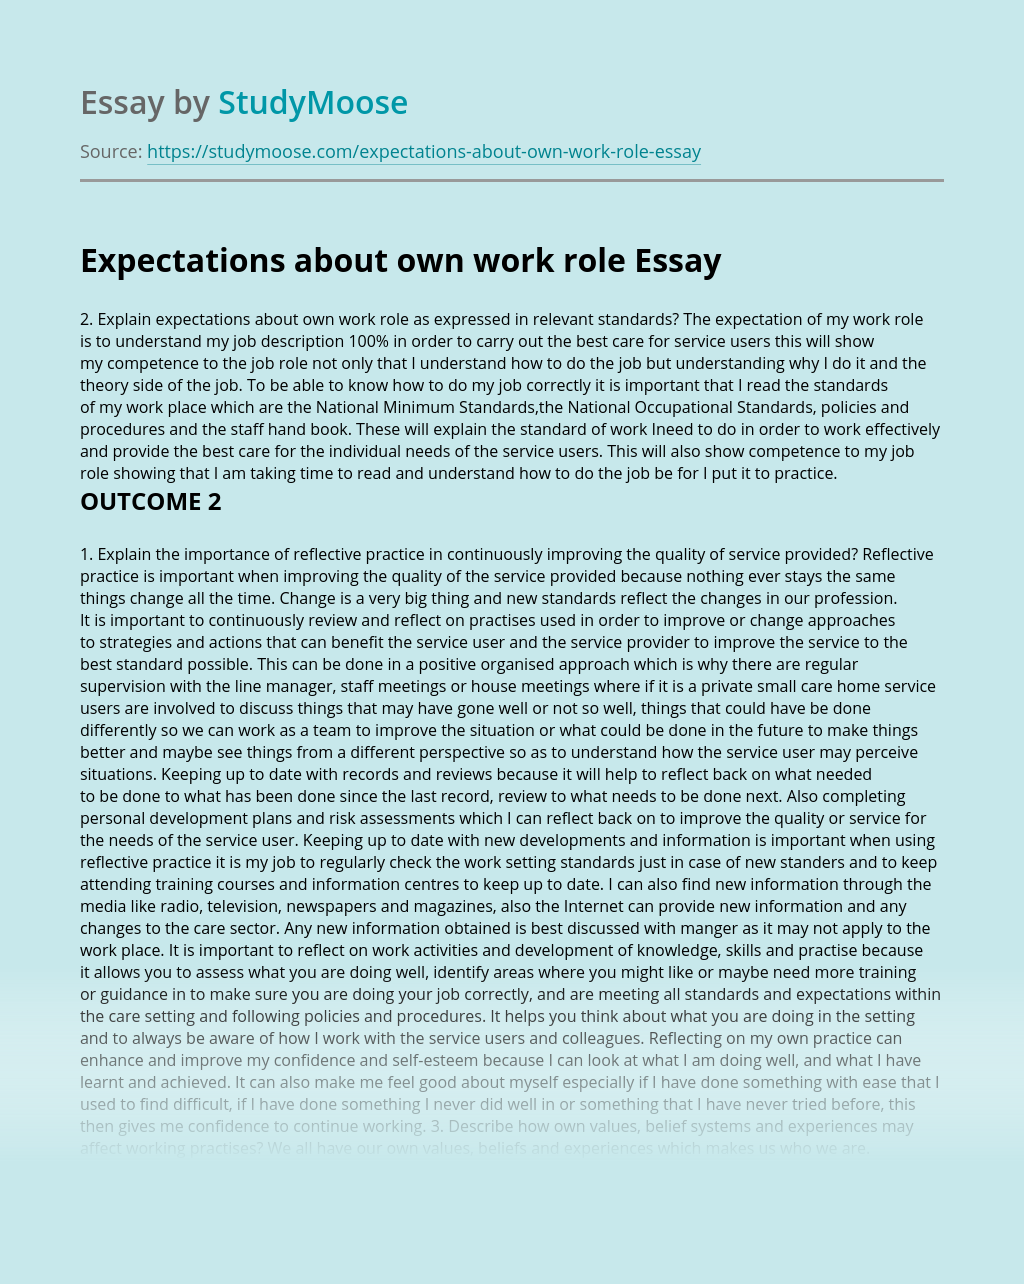 Expectations about own work role